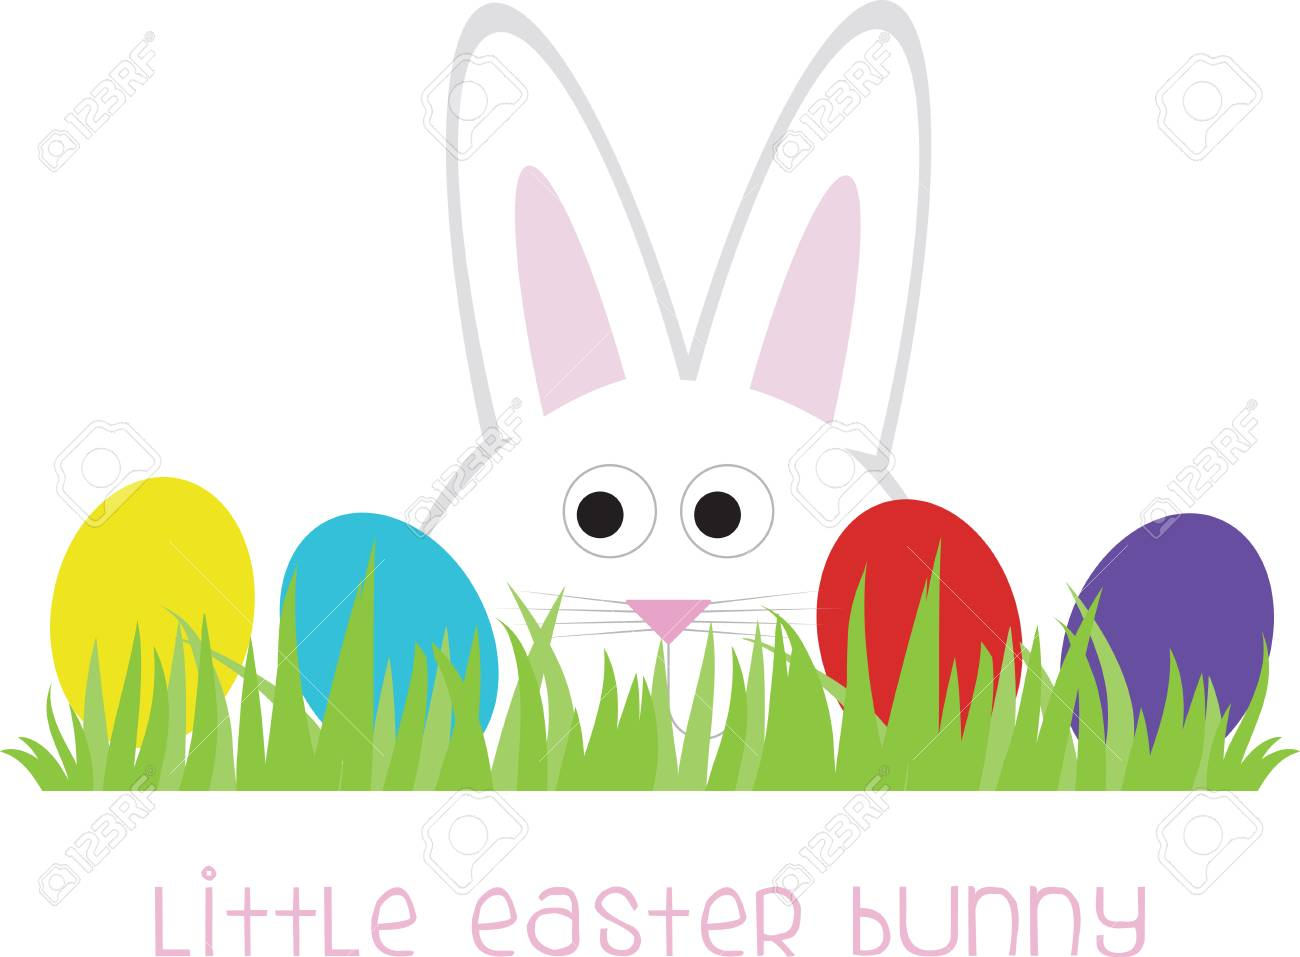 So Cute And Colourful Perfect For Easter Decorations